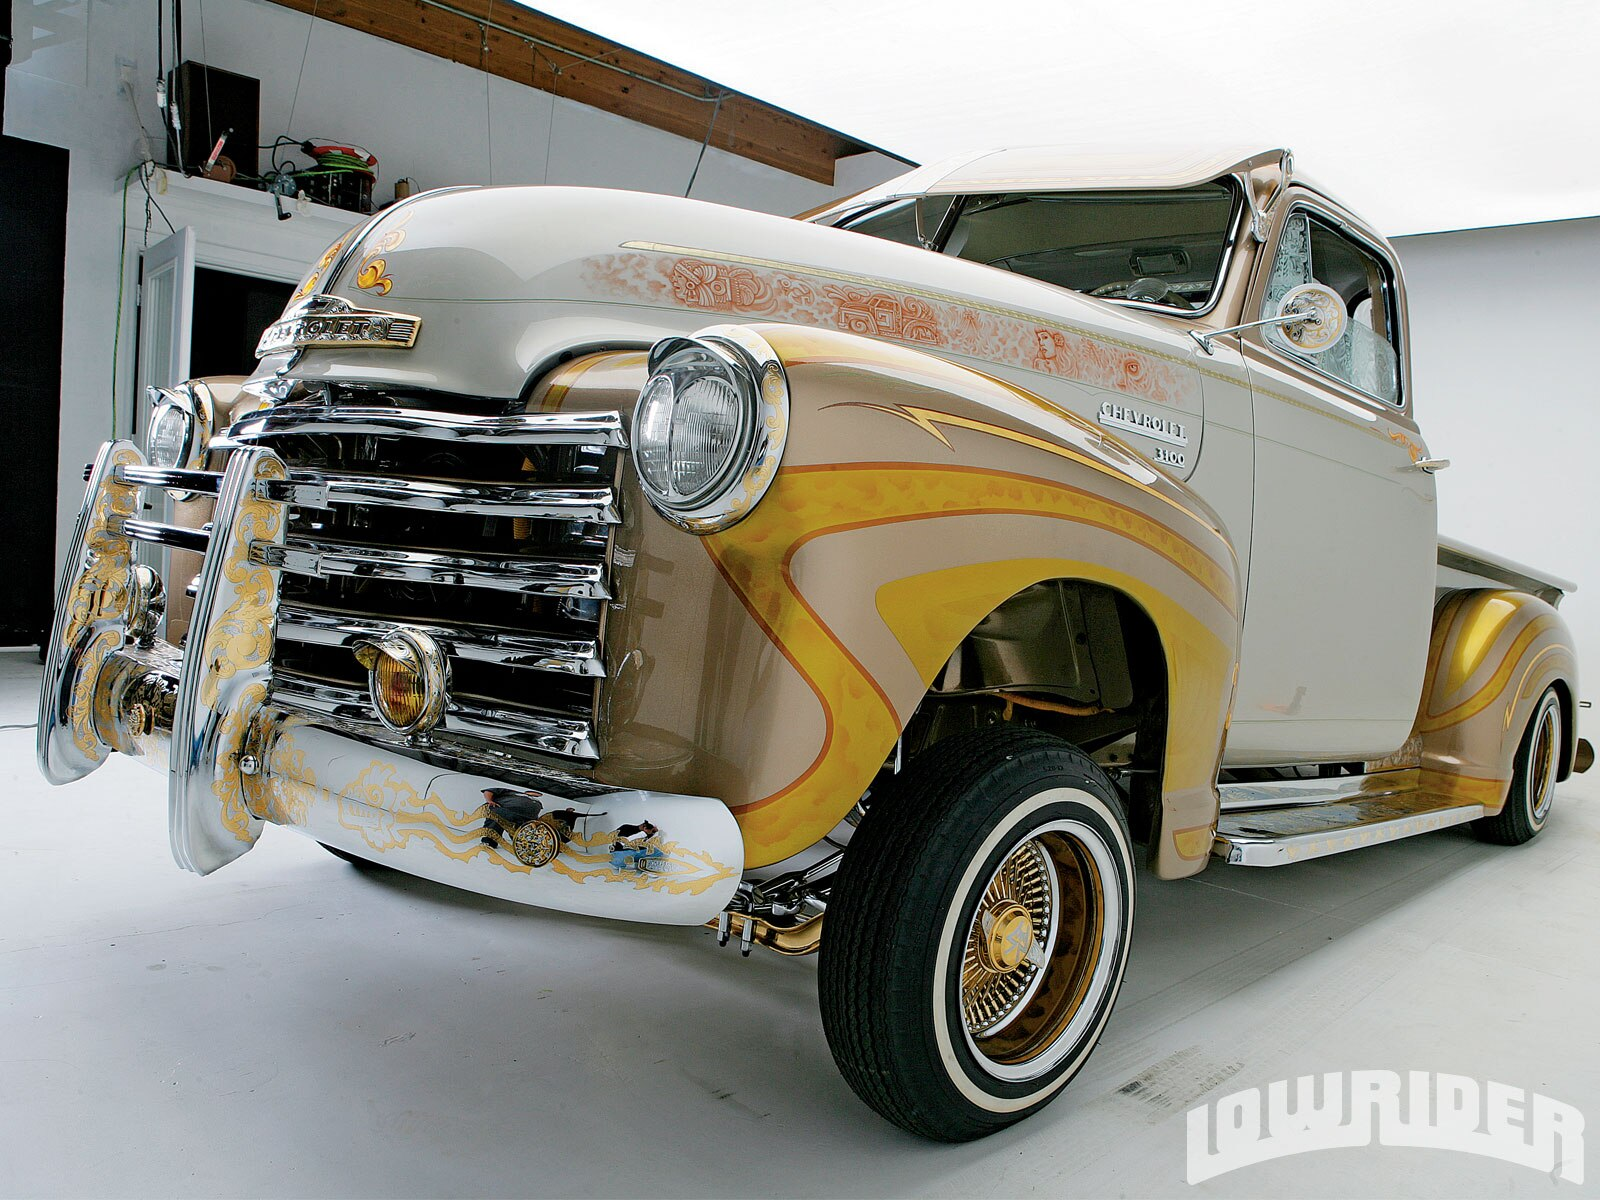 lrmp-1008-08-o-1951-chevrolet-pickup-front-view1